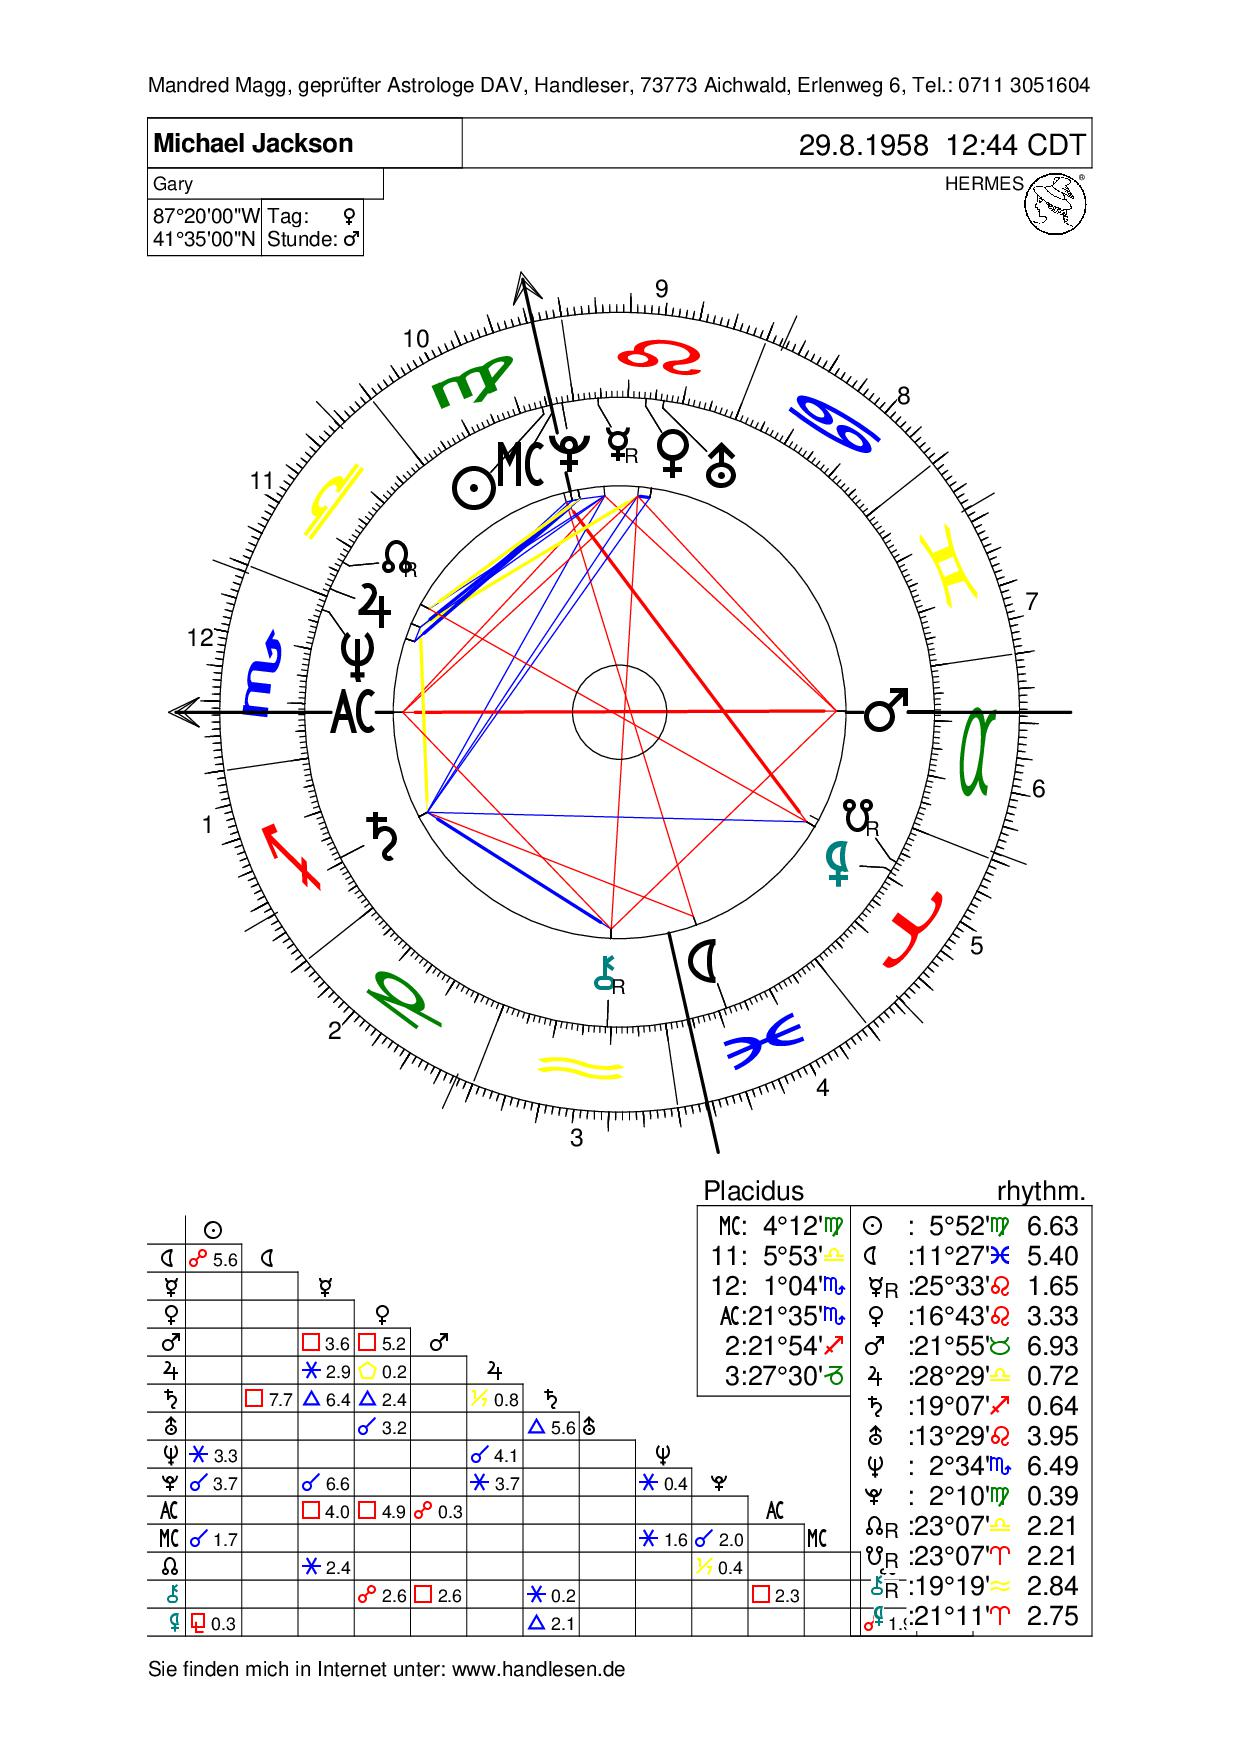 Michael Jackson birth chart I